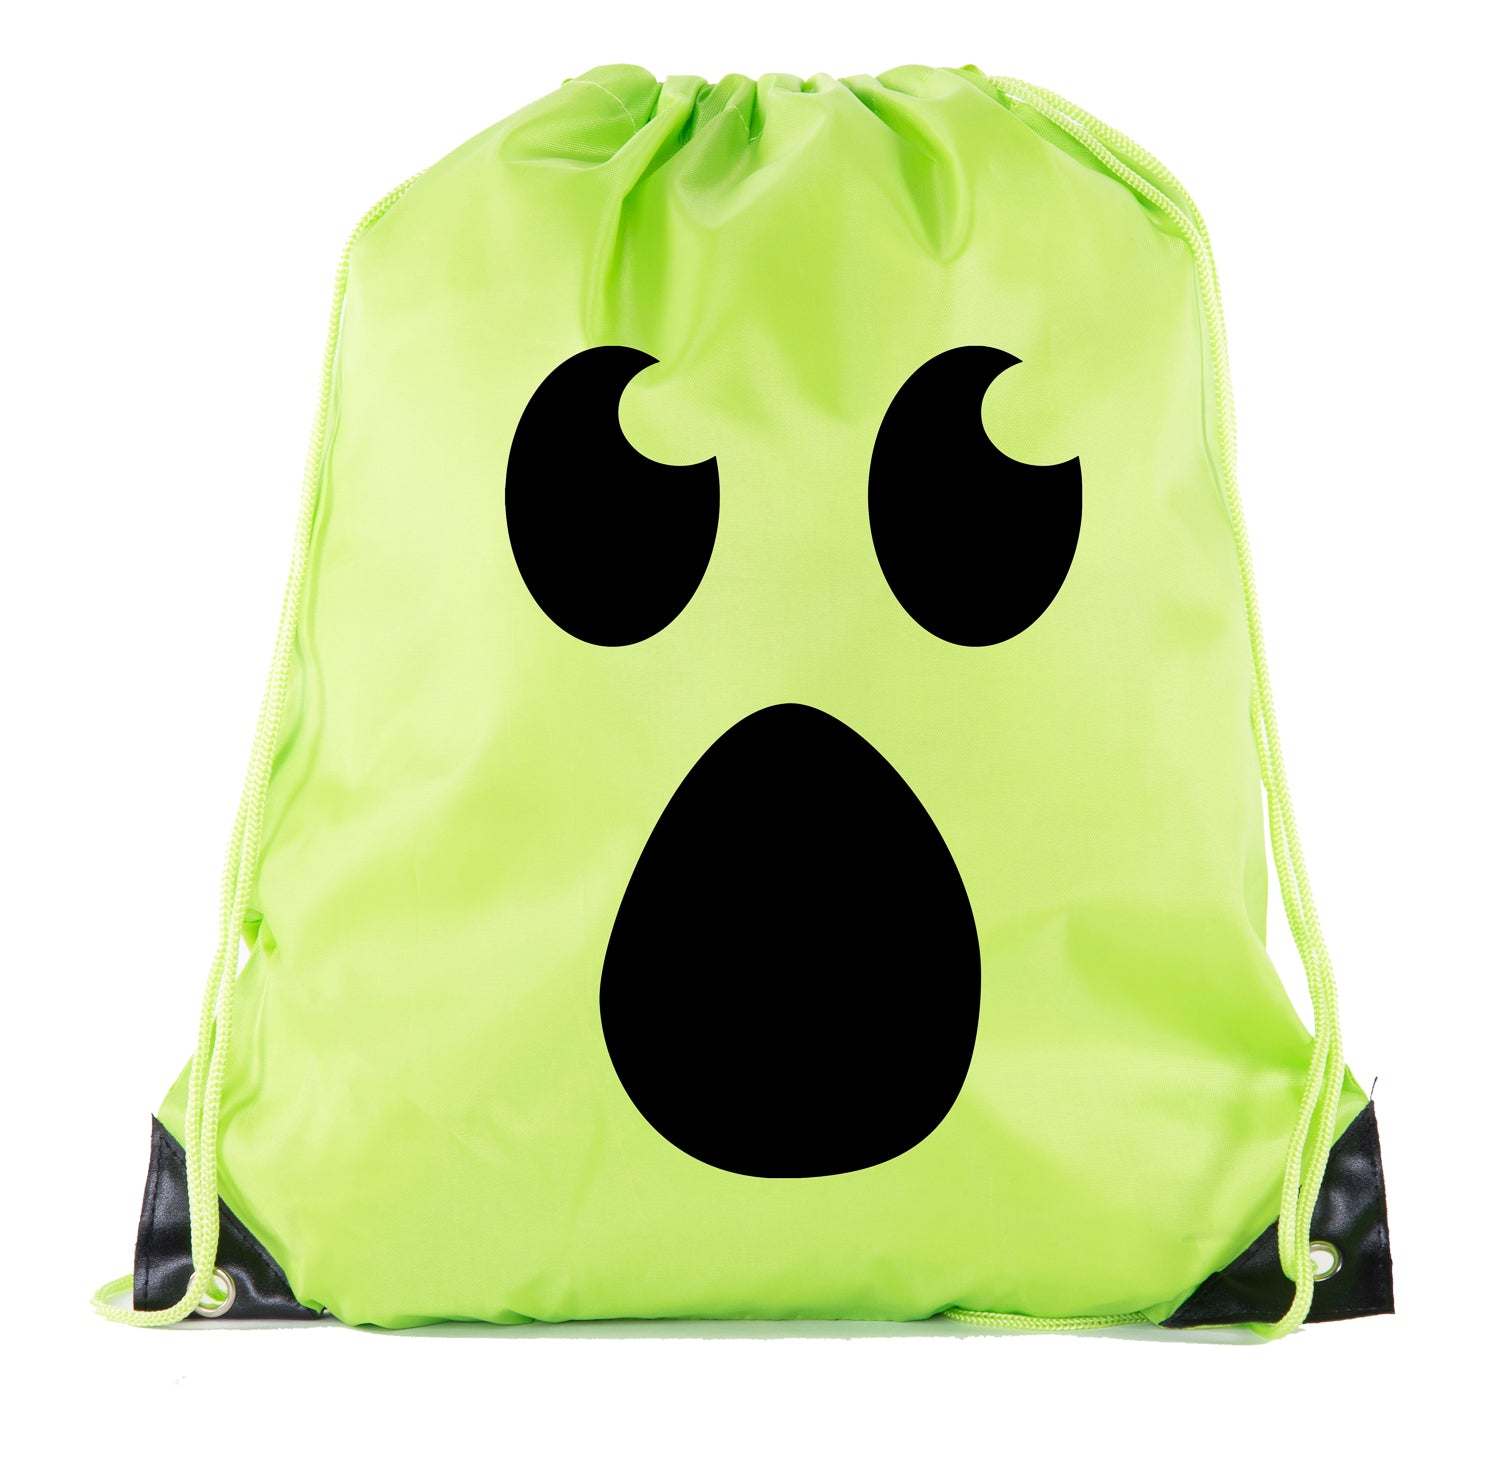 Accessory - Halloween Drawstring Bag | Halloween Trick Or Treat Bag For Candy, Parties And More! - Ghost